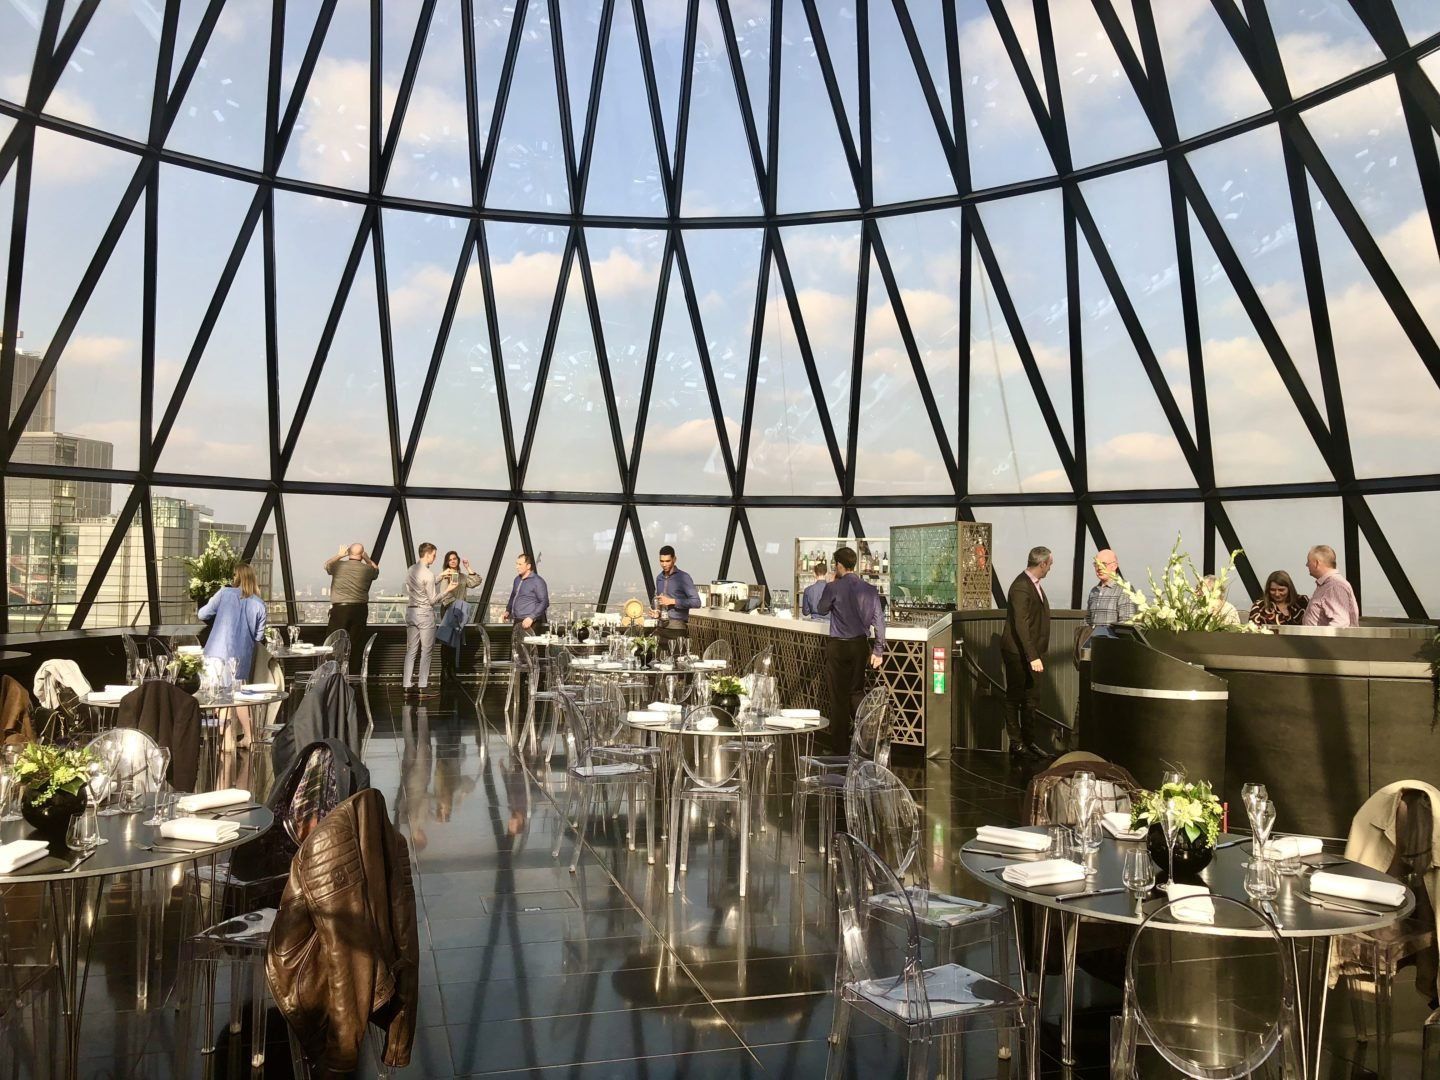 London Restaurant Festival experience at the Gherkin in London